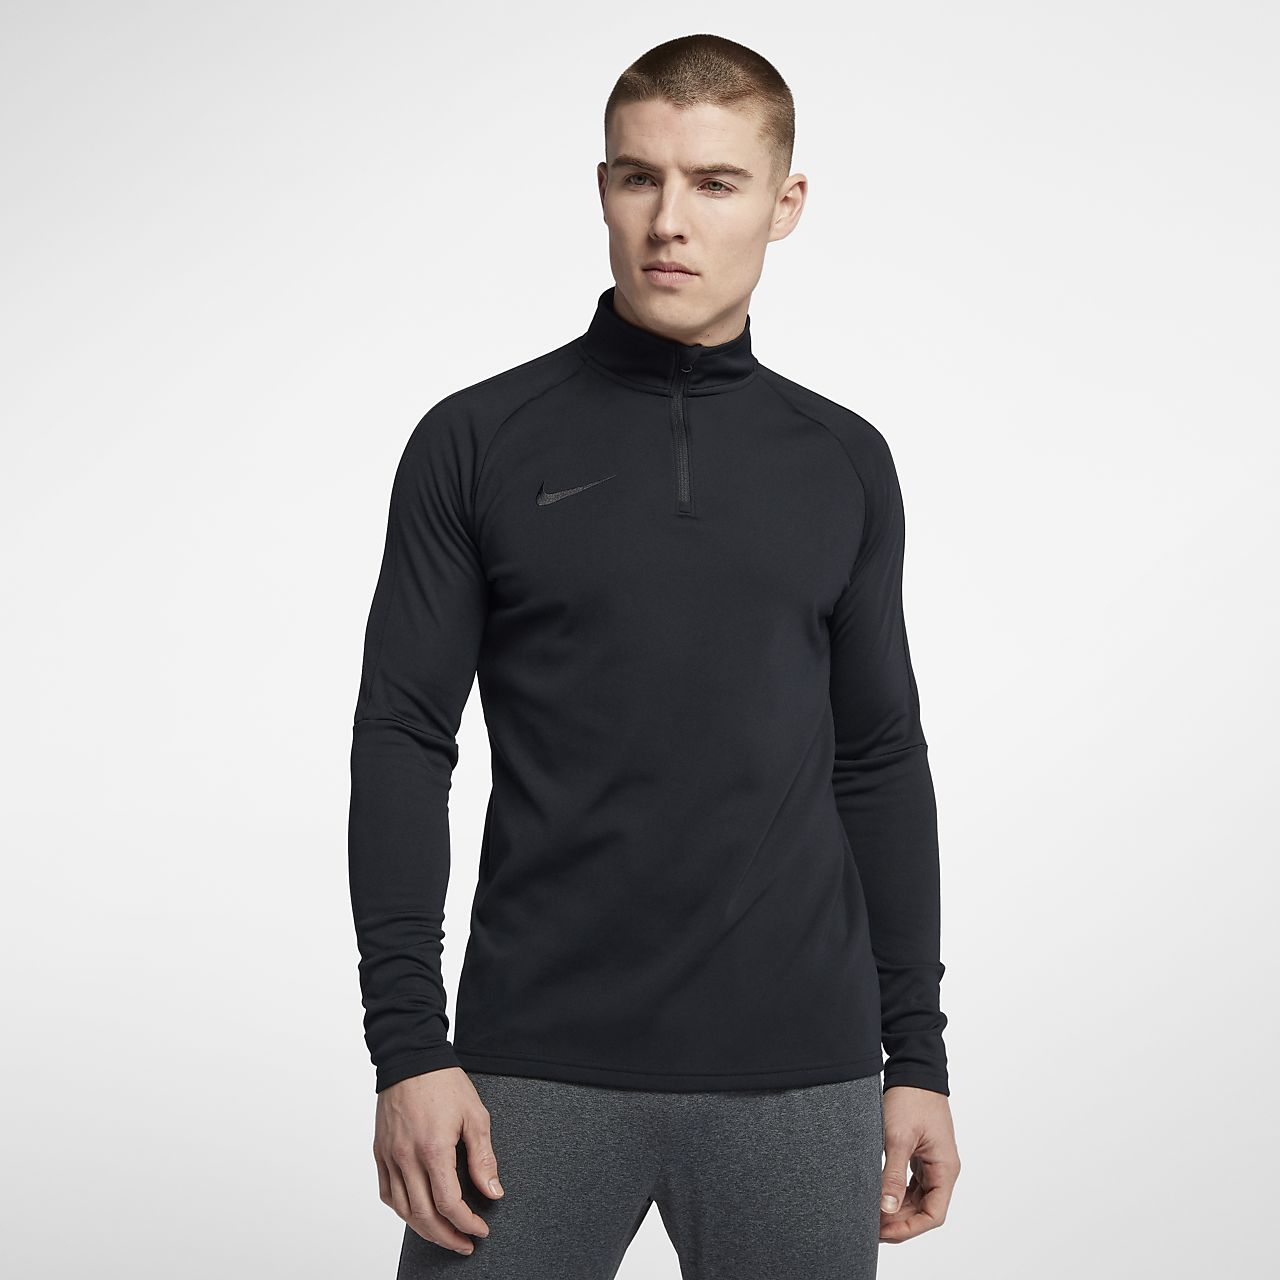 bfbf78688a01 Nike Dri-FIT Academy Men s 1 4 Zip Football Drill Top. Nike.com DK